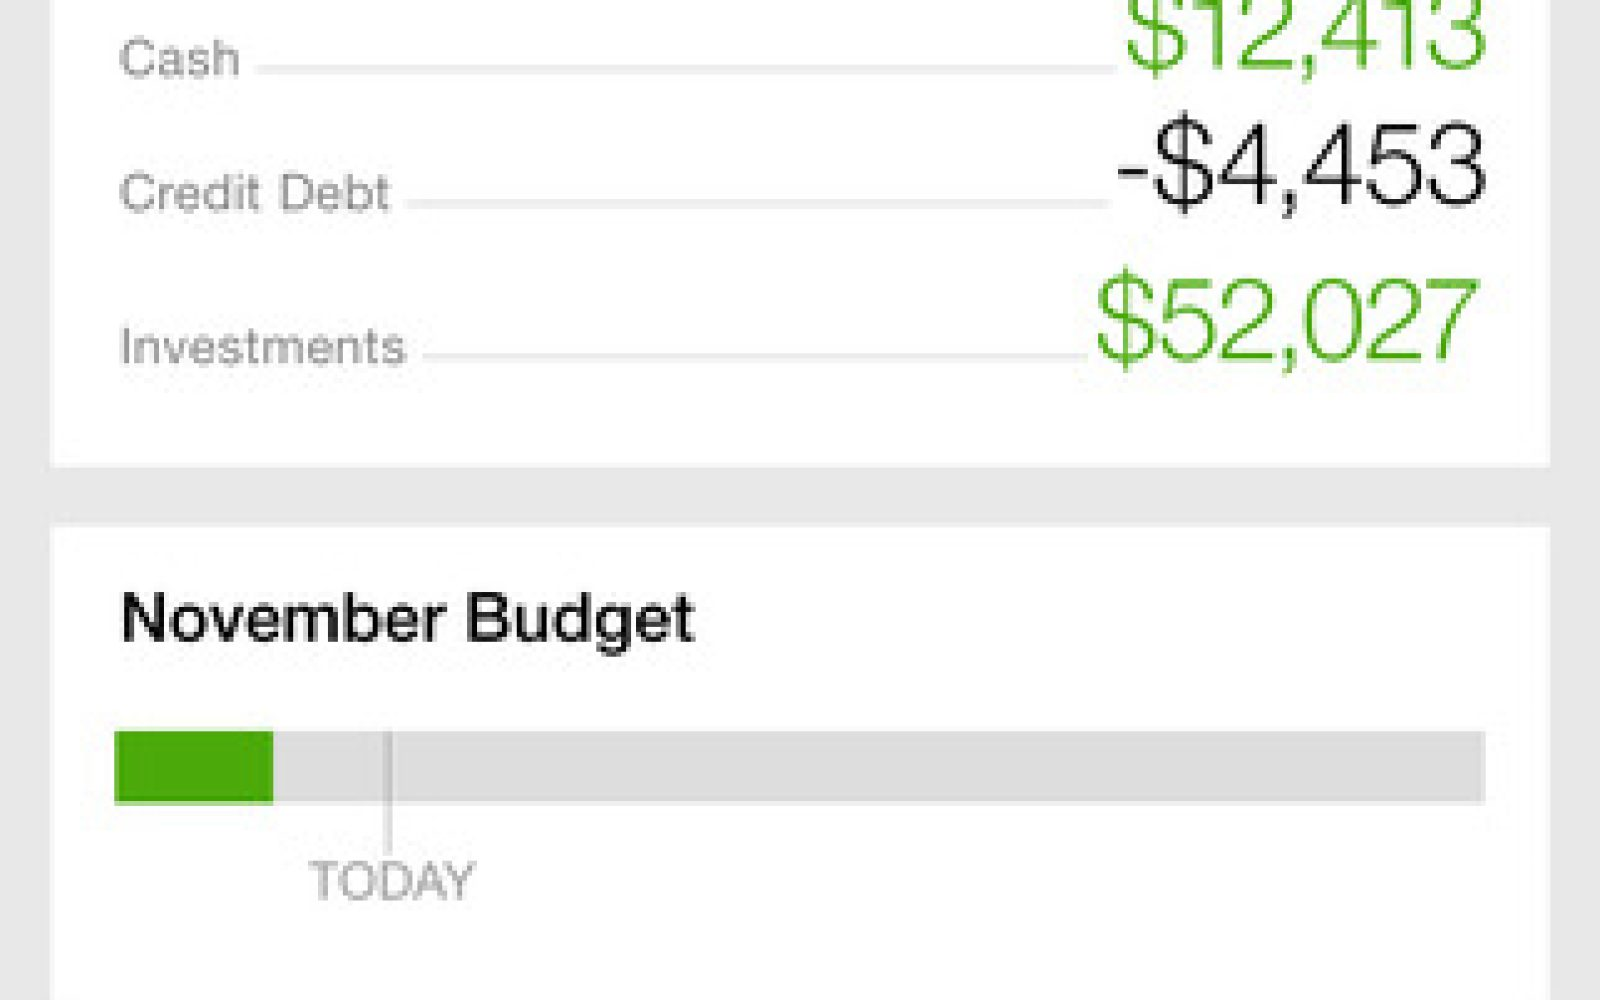 Intuit's Mint iPhone app updated with faster personal